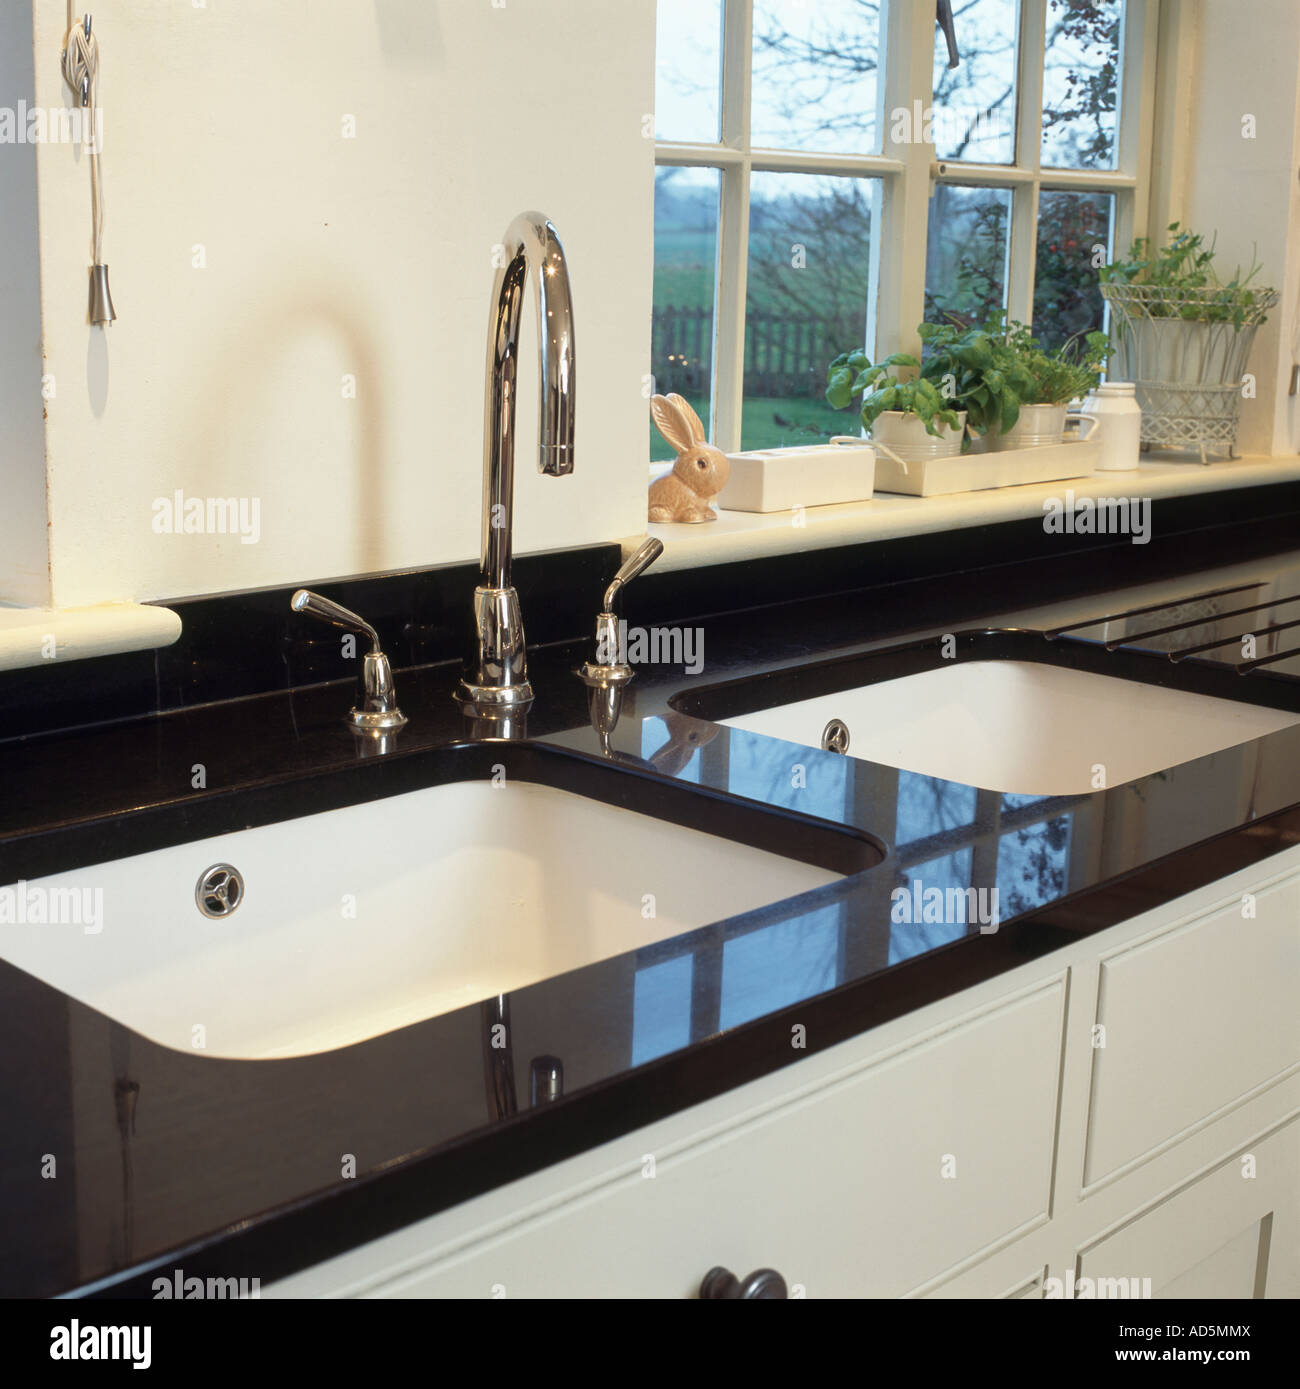 Double White Sinks And Chrome Taps In Black Granite